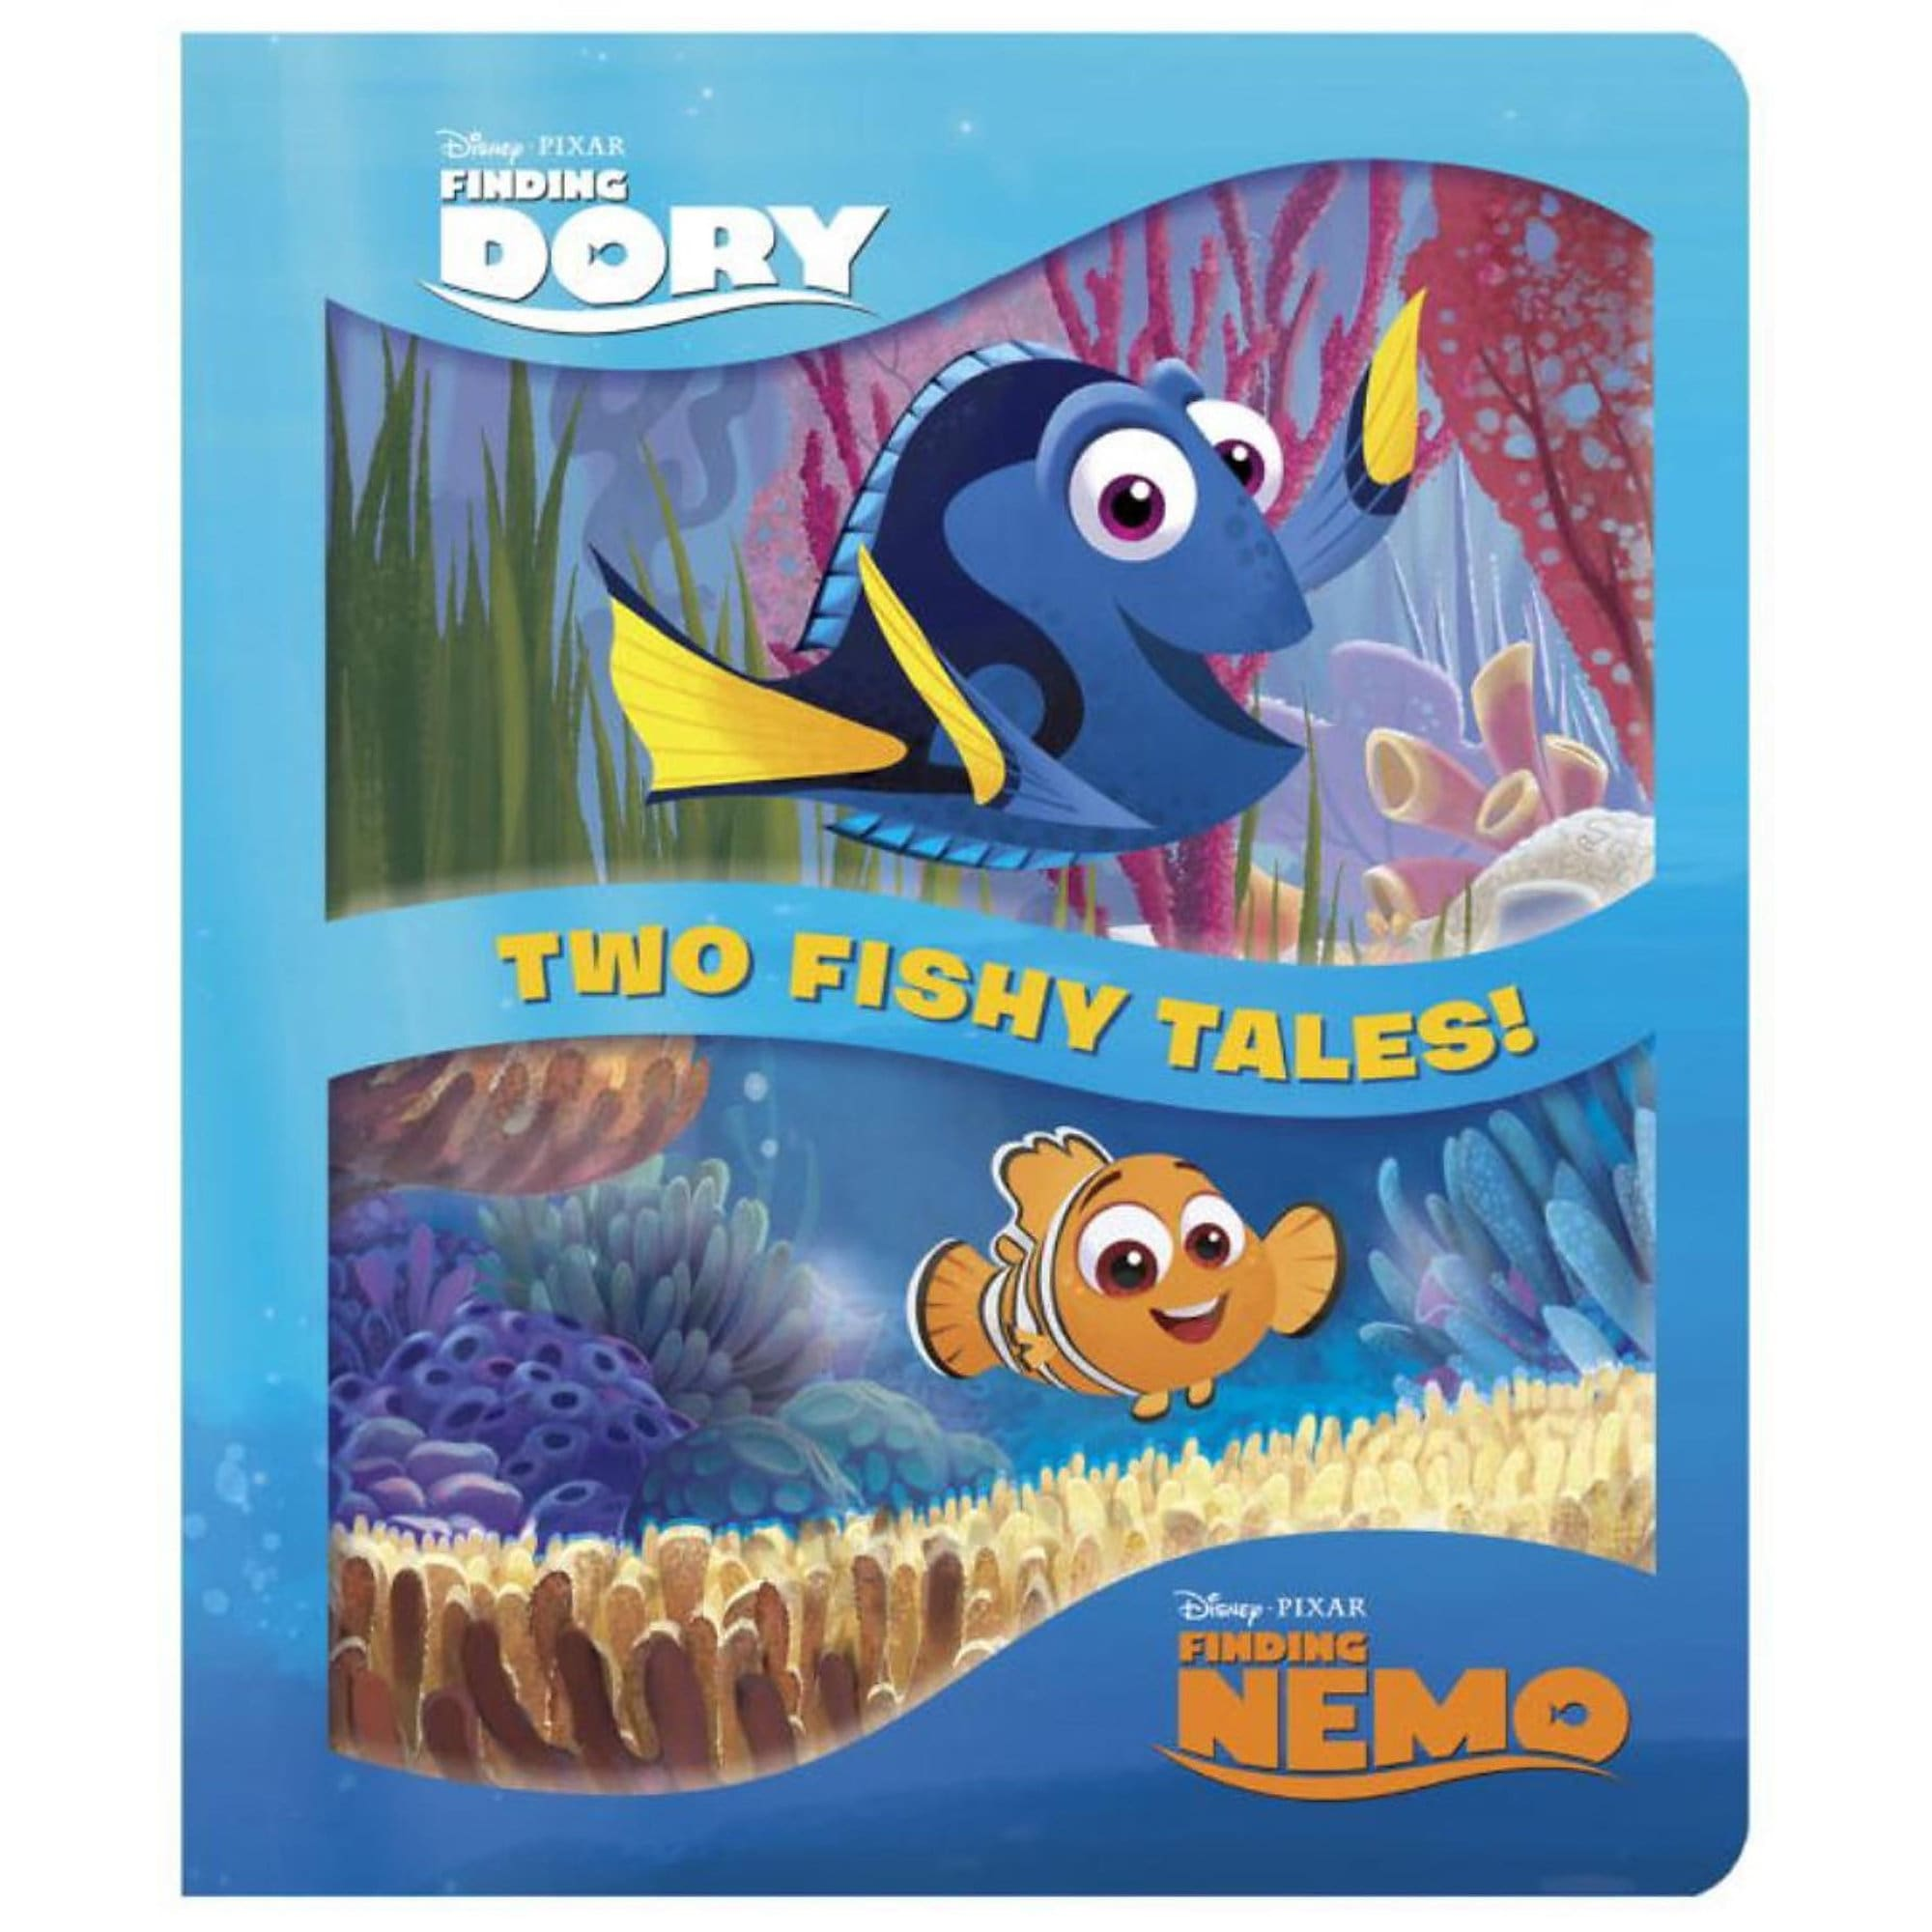 Finding Dory / Finding Nemo Board Book